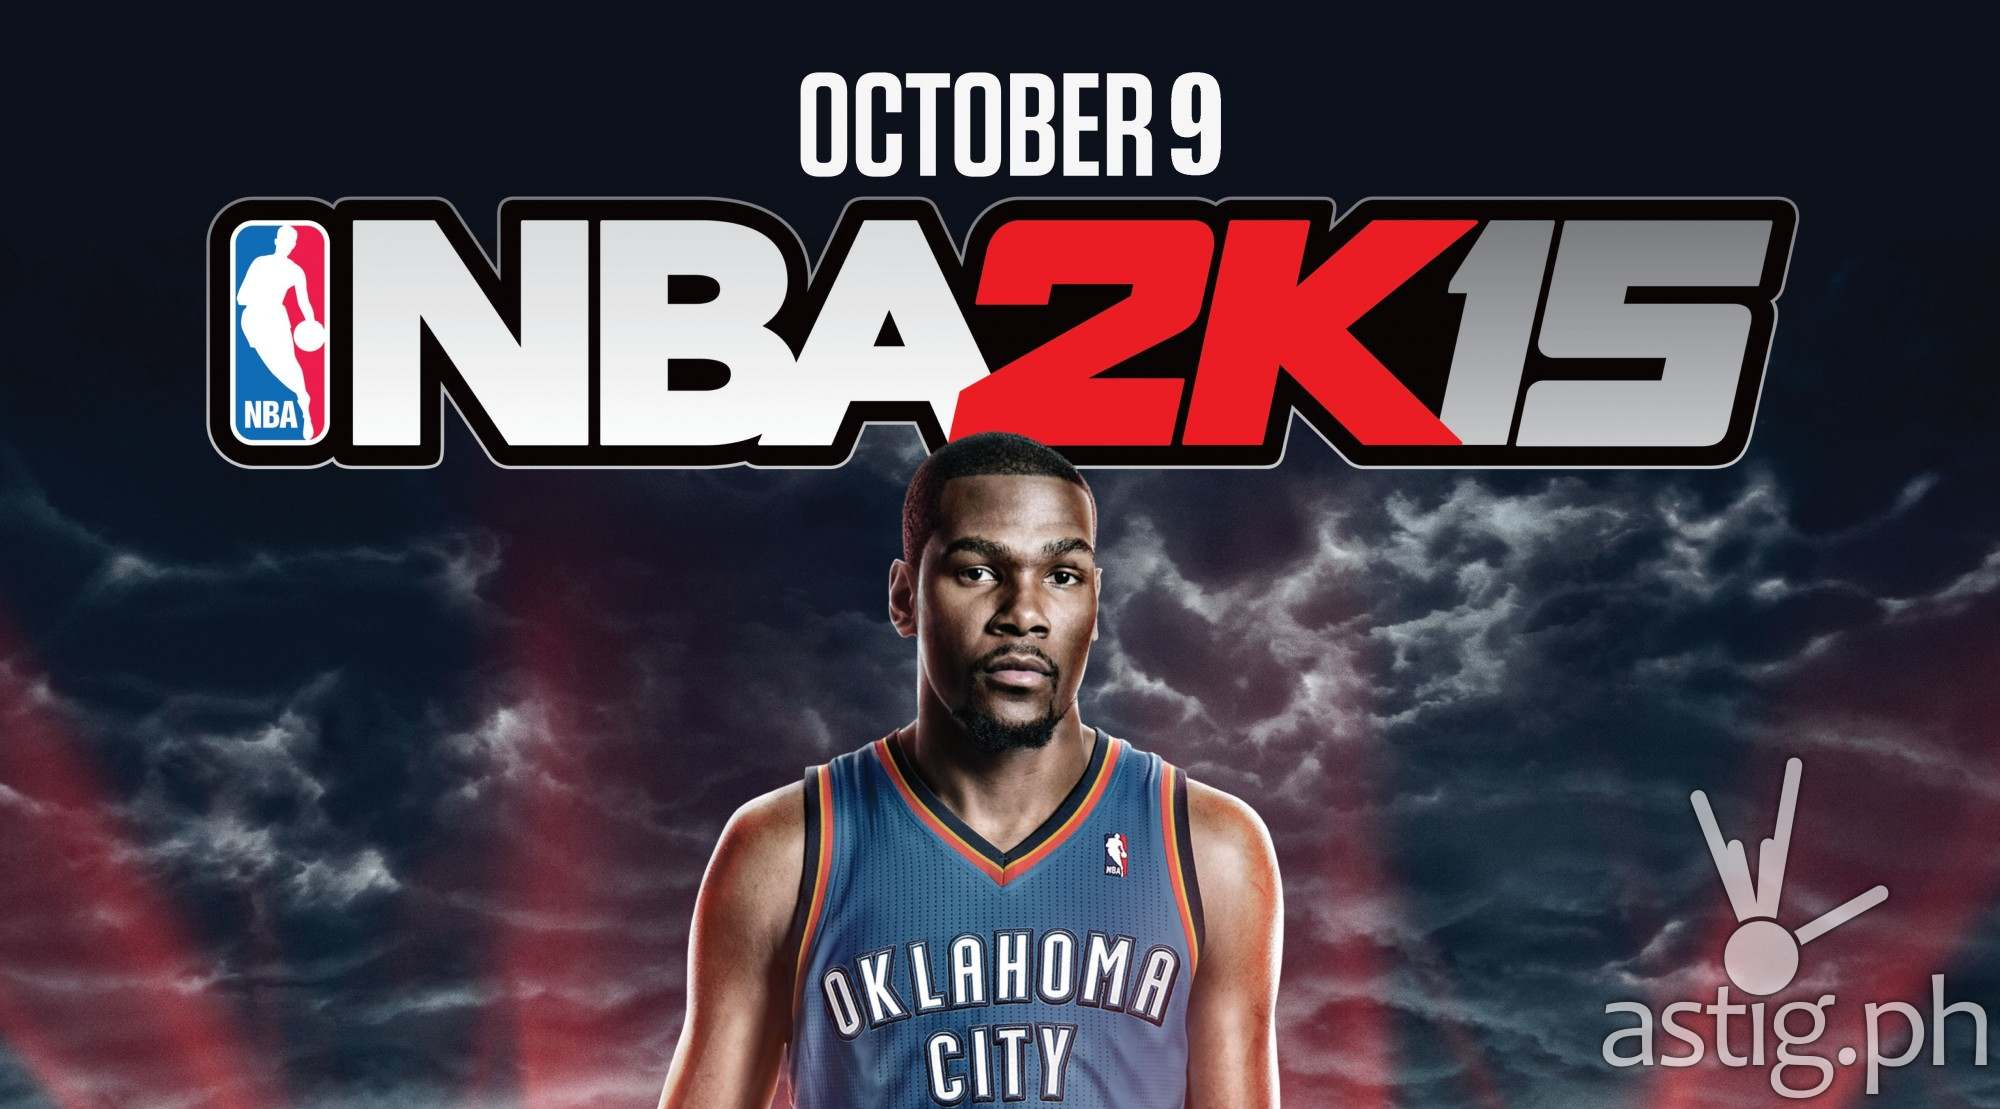 NBA 2K15 by 2K Interactive